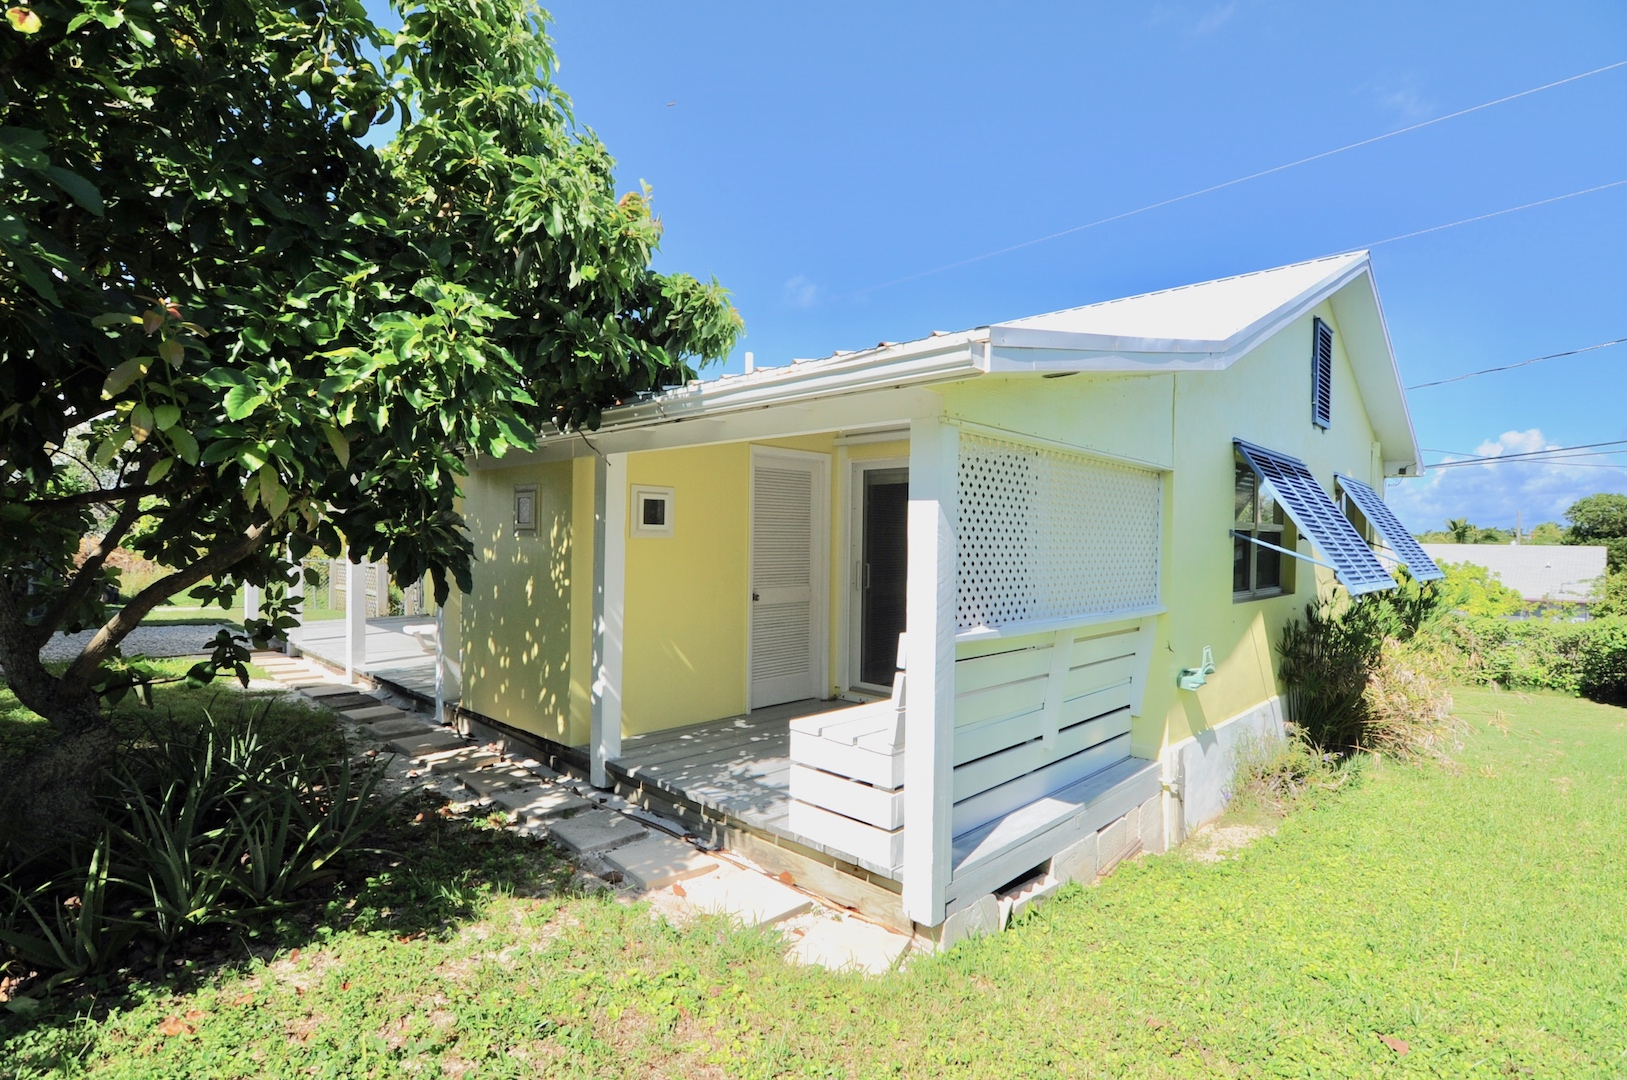 Home for sale in Man-o-War cay Abaco just minutes from the Atlantic Ocean